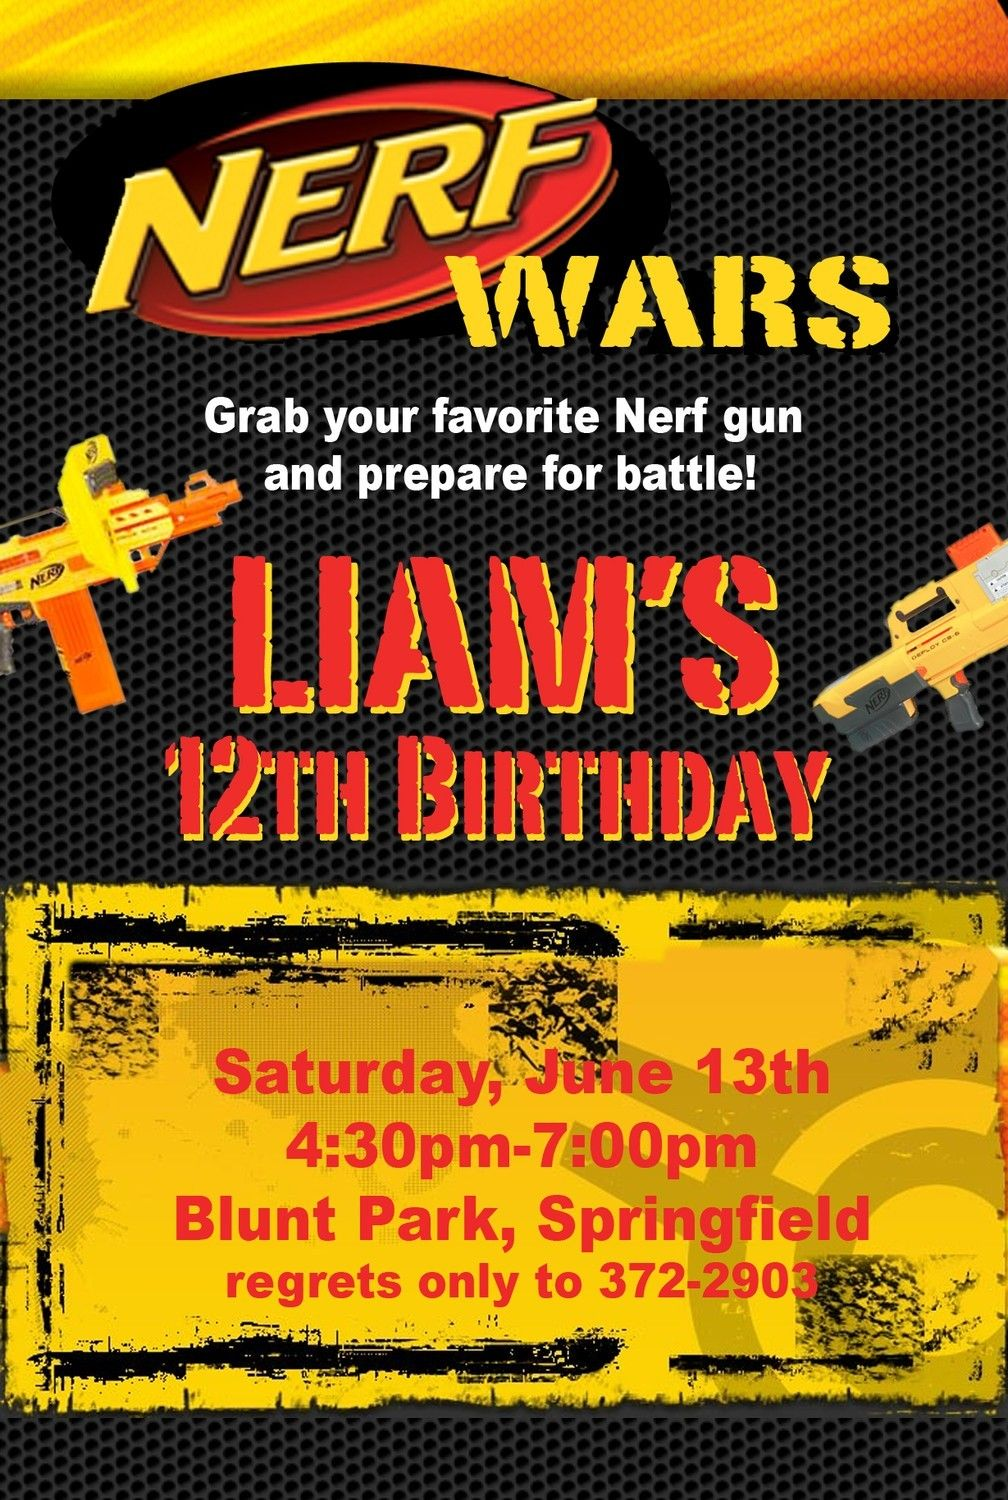 nerf war birthday party invitation idea birthday party nerf war birthday party invitation idea